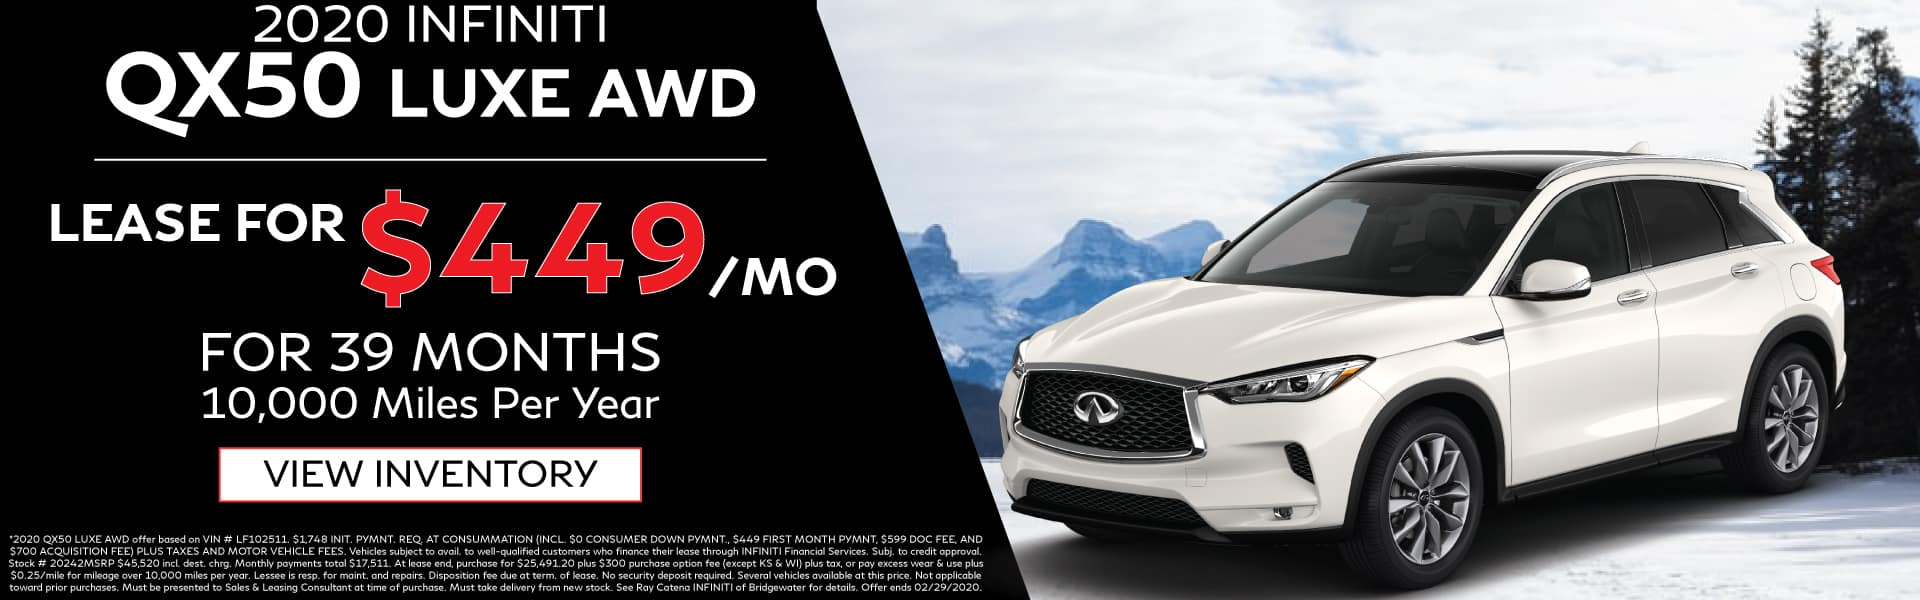 2020 INFINITI QX50 Luxe AWD. Lease for $449 a month for 39 month. See the retailer for complete details. Image is of a 2020 QX50 on the snow next to a mountainside.